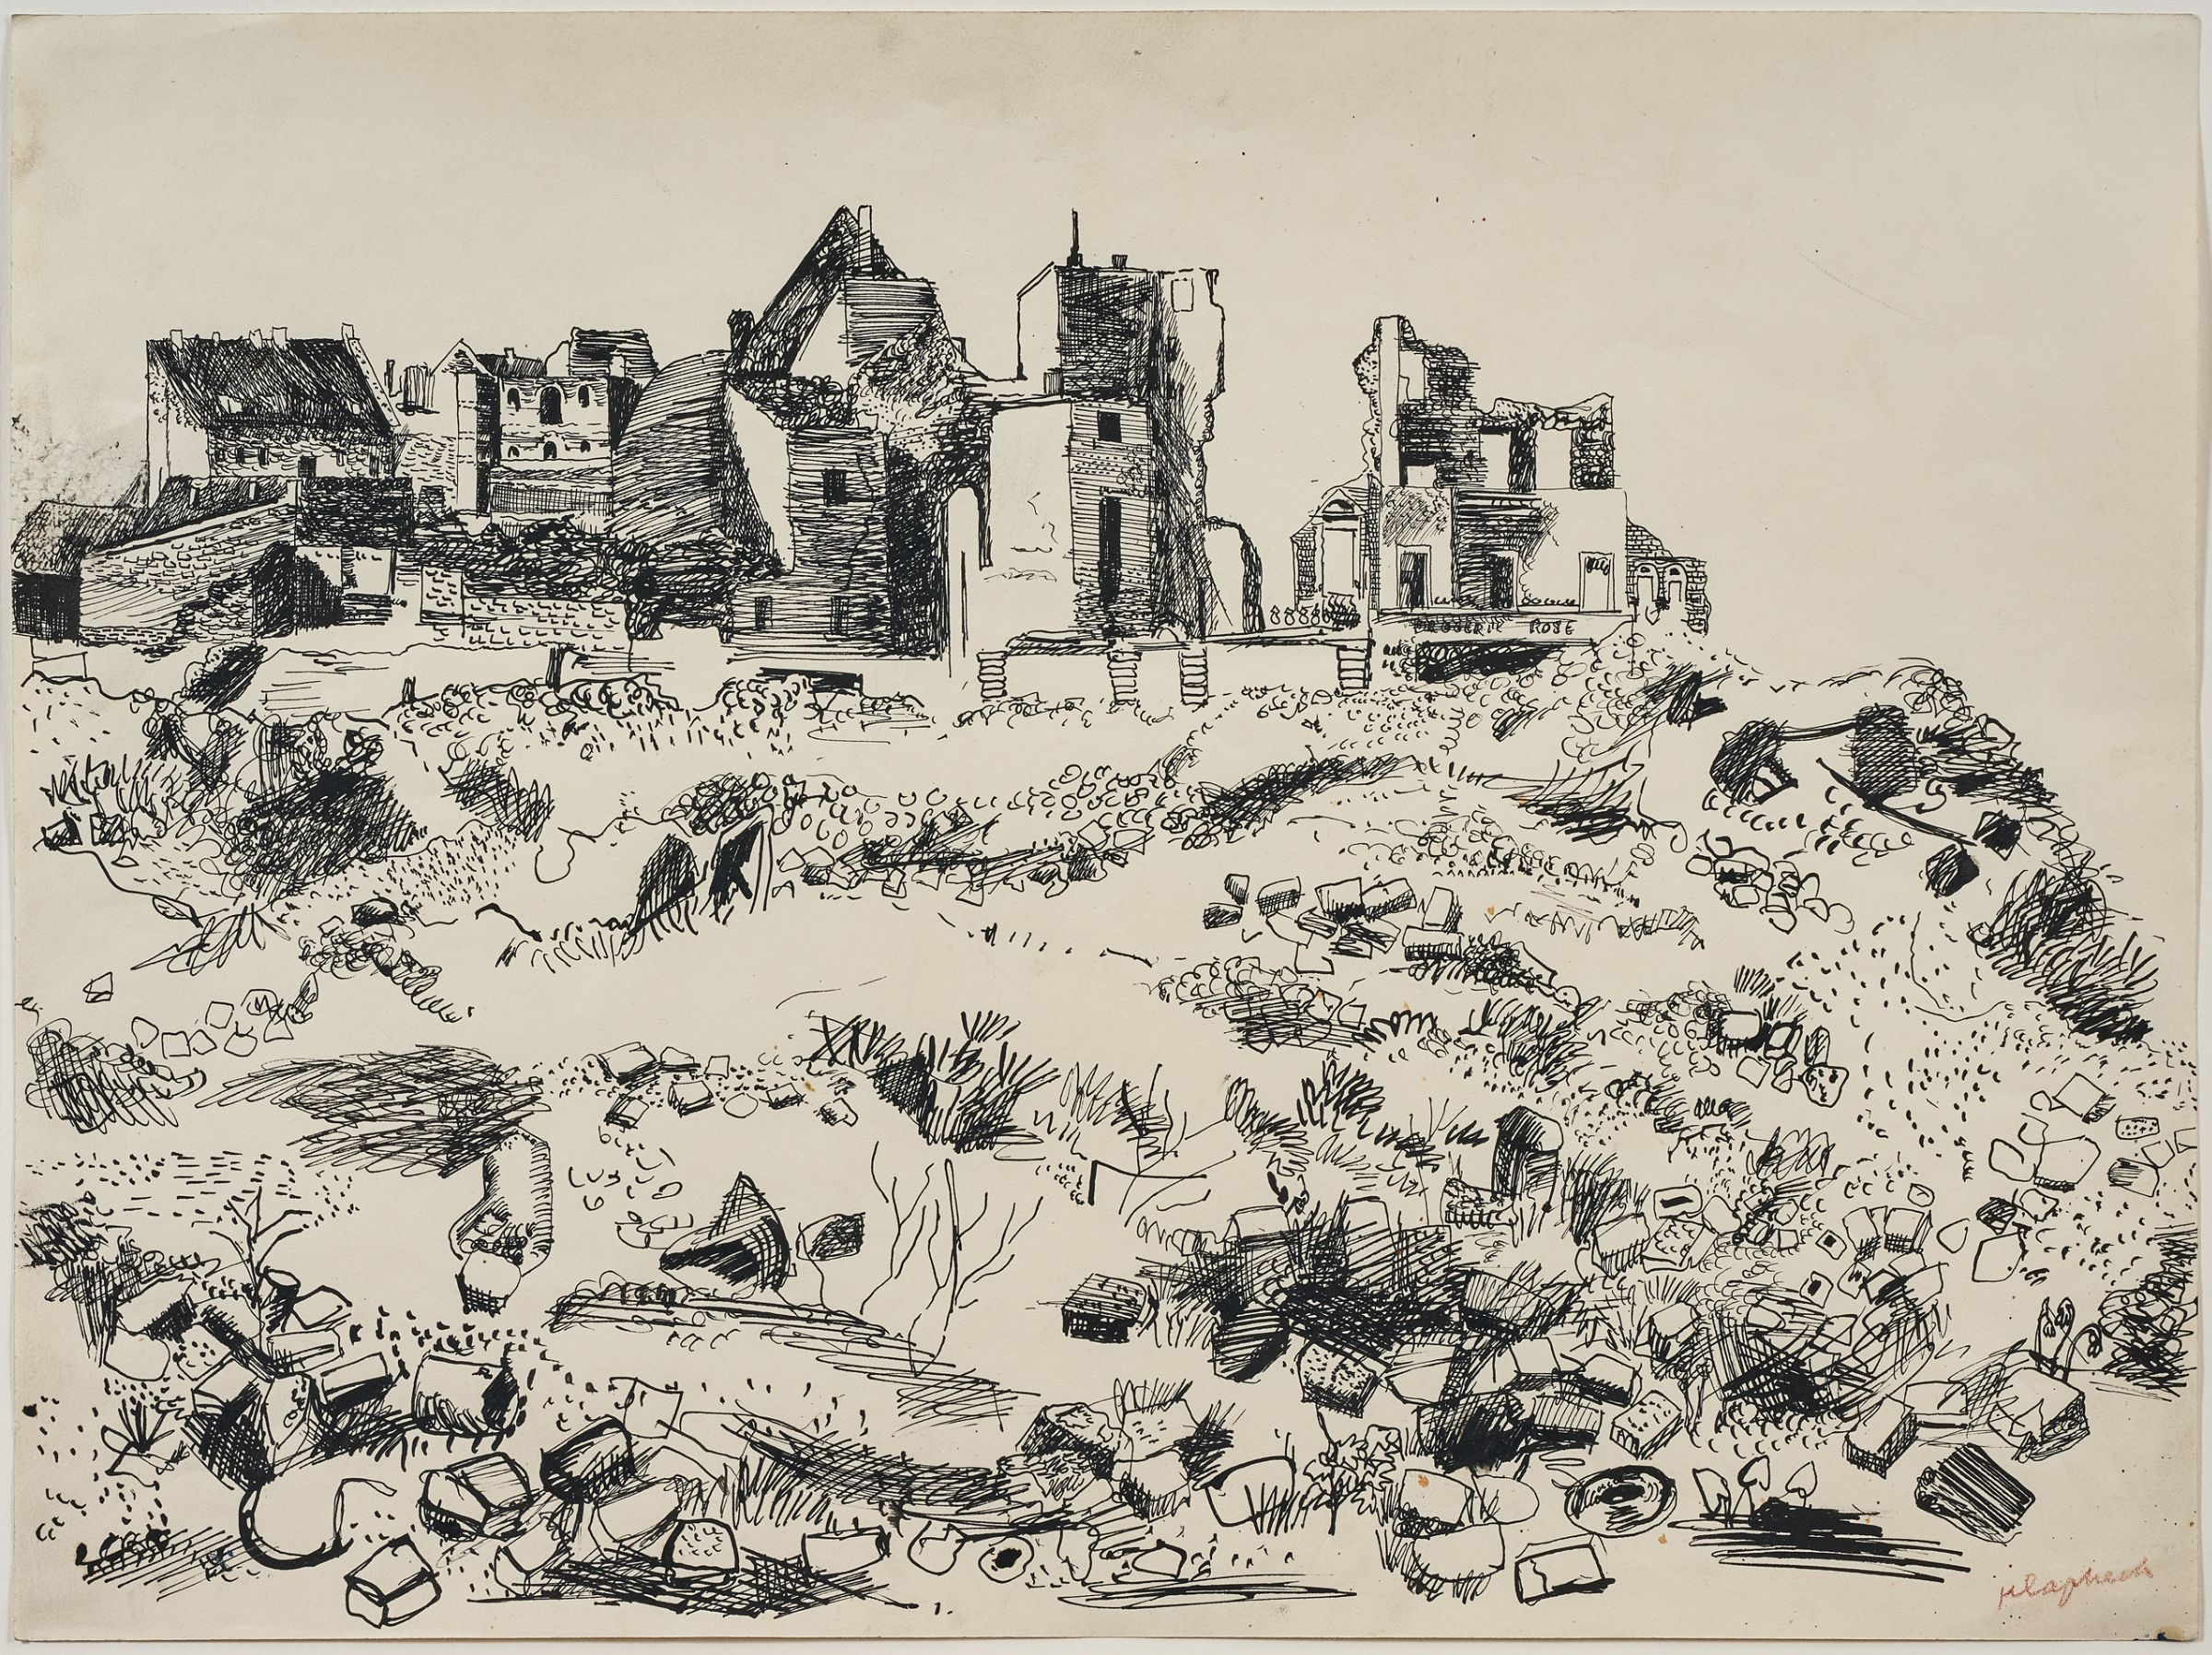 Konrad Klapheck, Landscape with Ruins, 1950. Pen and ink on paper. Collection of the artist, TL41828.2.